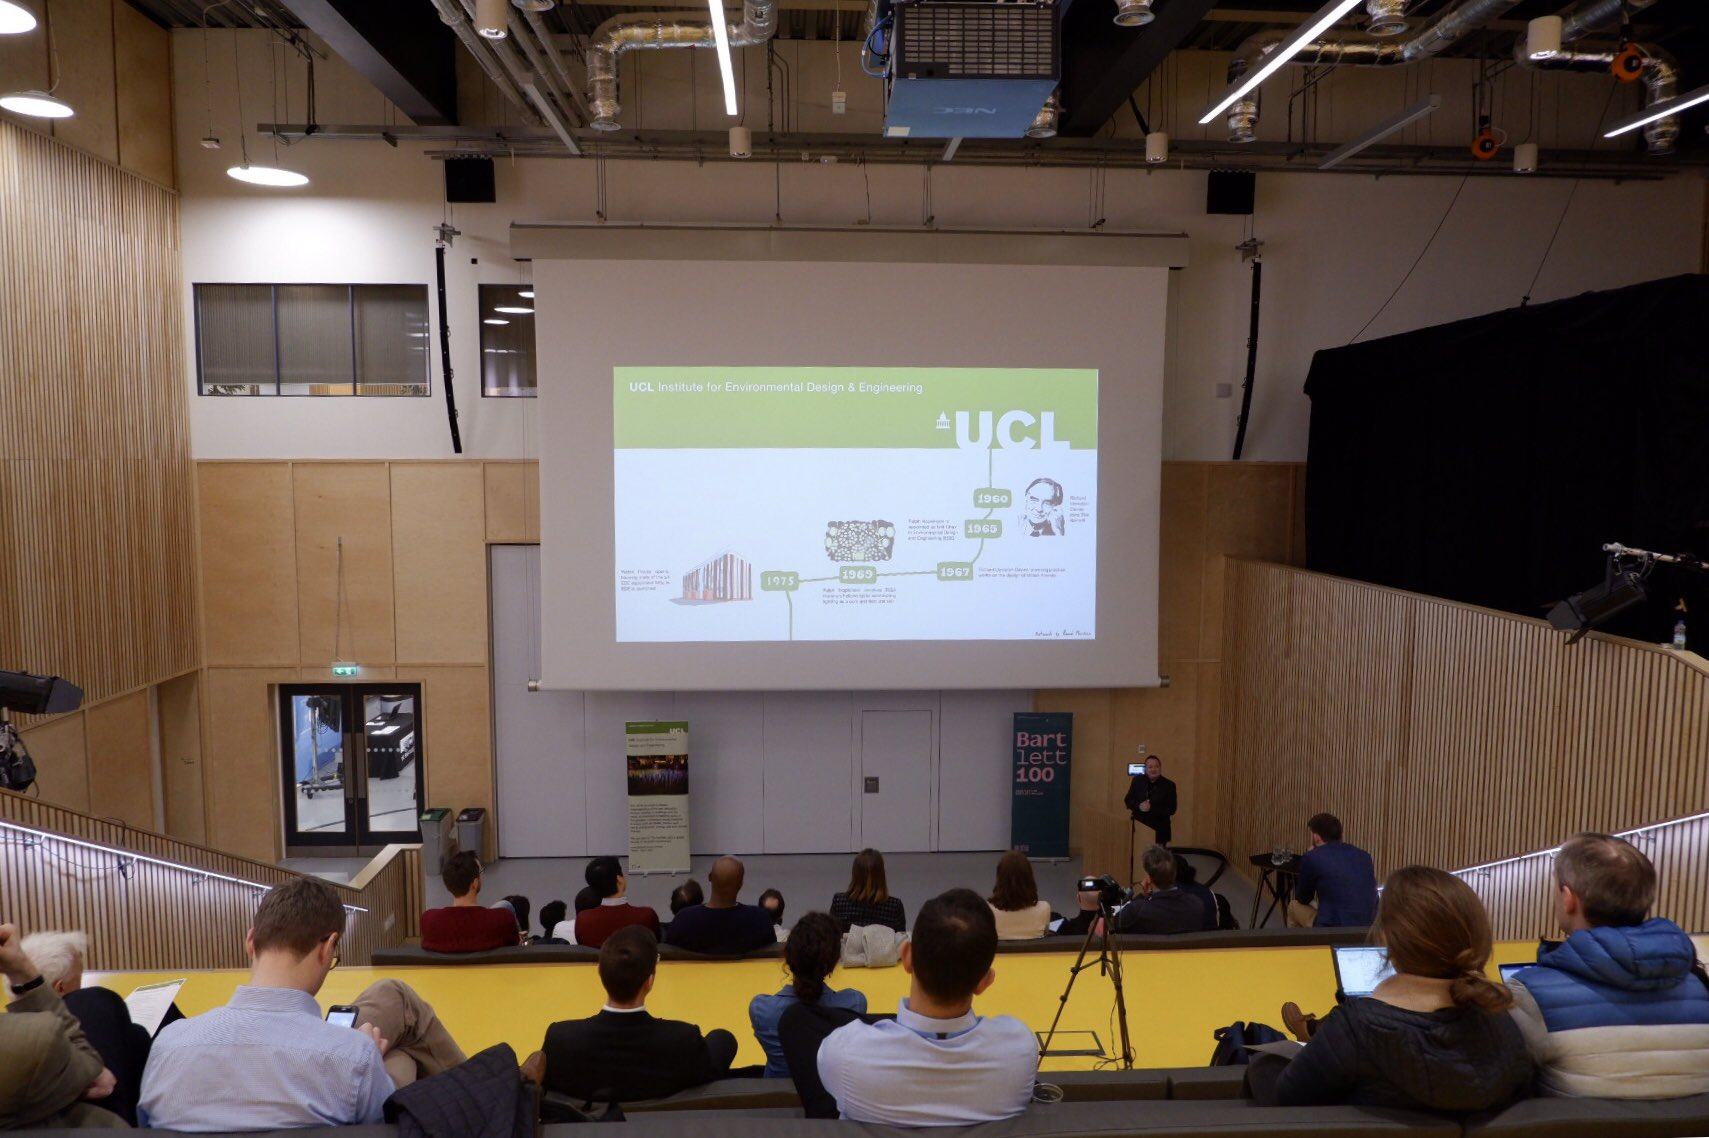 Ucl Inst For Environmental Design And Engineering On Twitter Iede Is Creating Graduates Equipped To Deal With The Changing Built Environment Prof Dejan Mumovic Shares Impact Of 50 Years Of Environmental